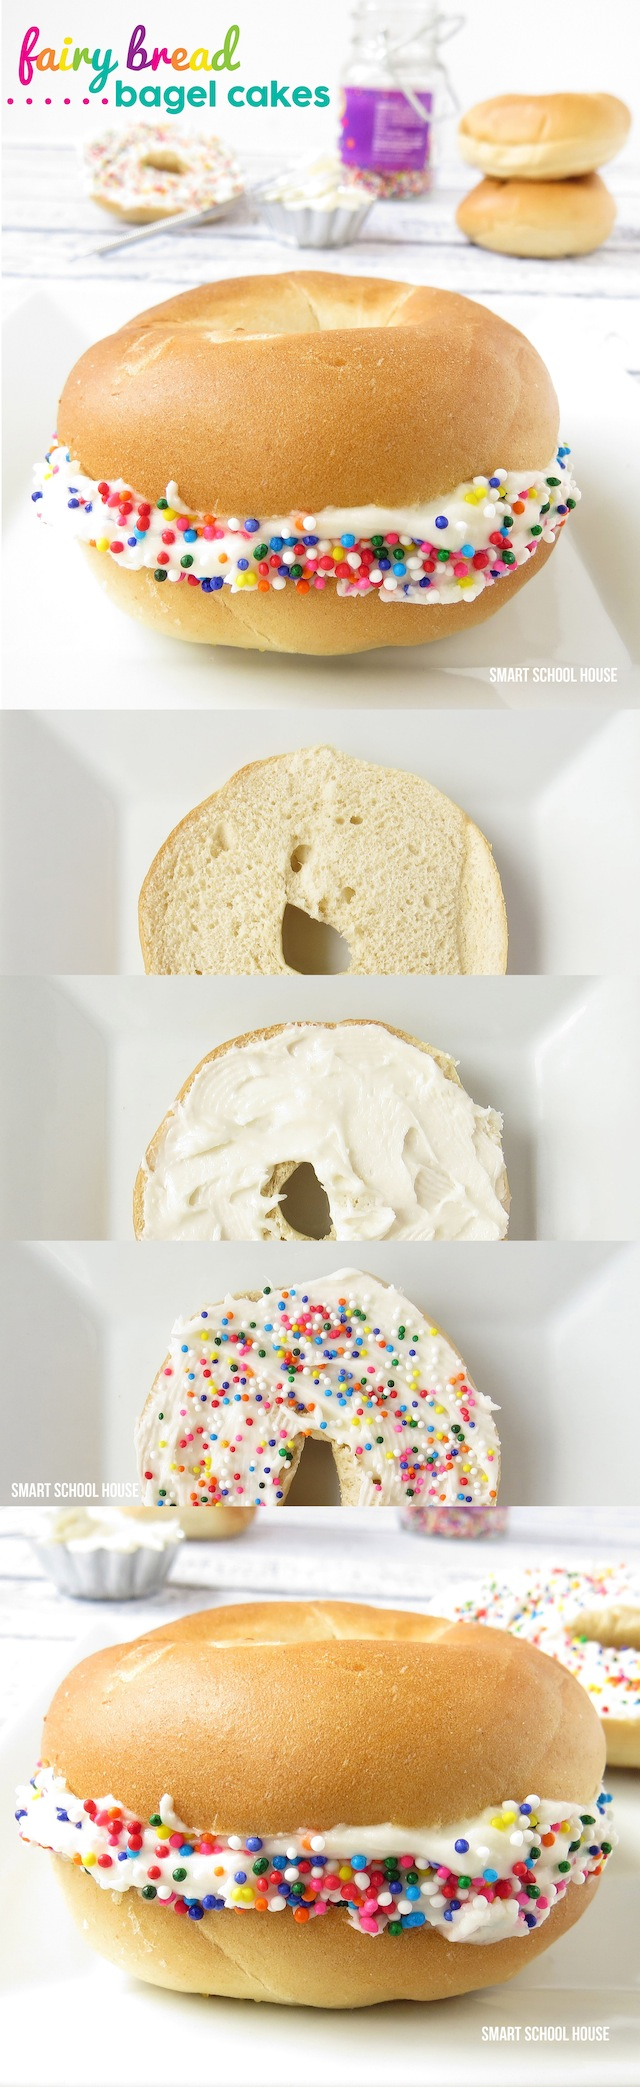 An easy and fun recipe for Fairy Bread Bagel Cakes